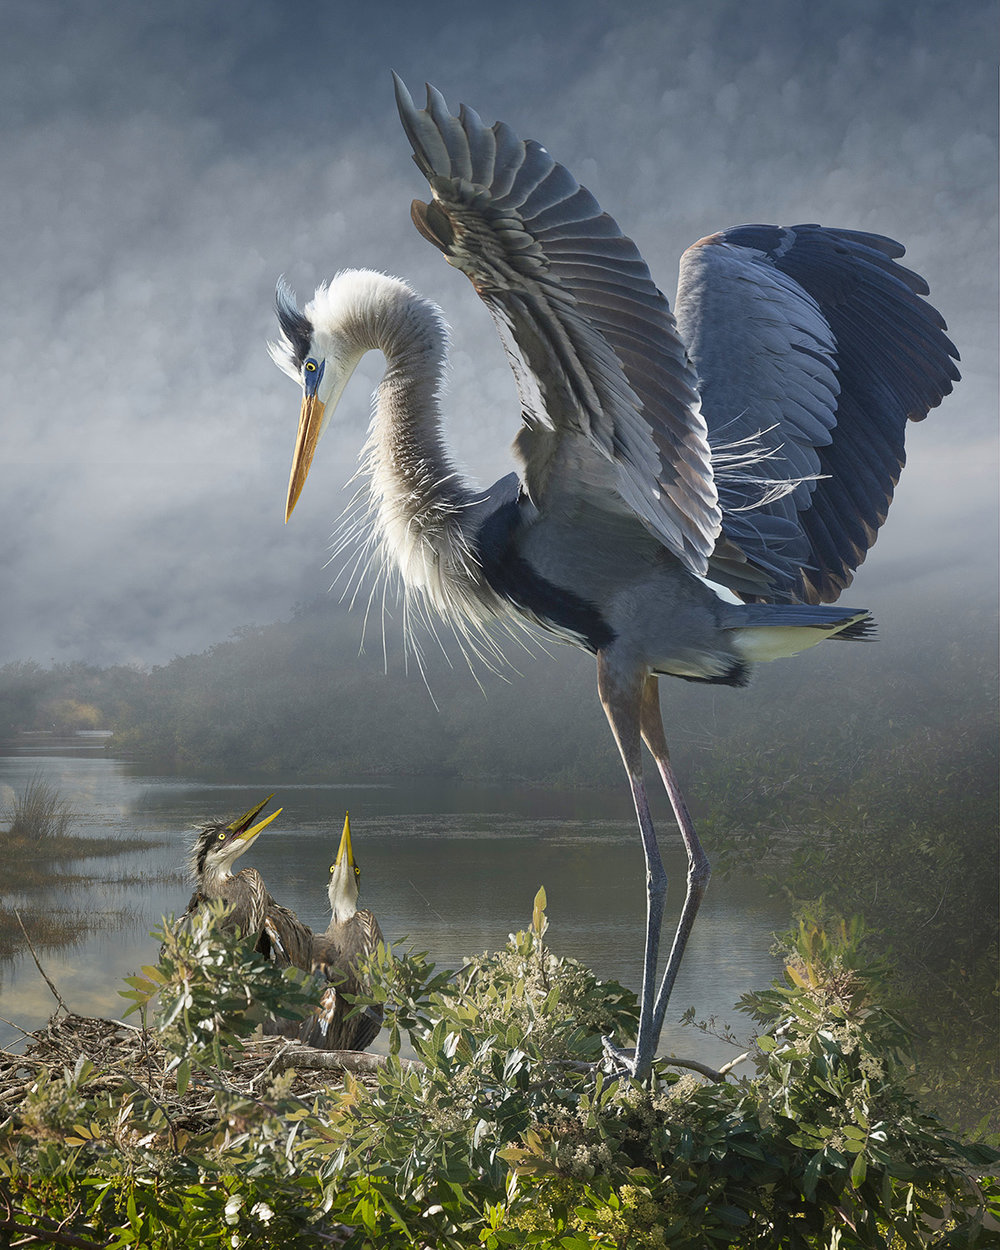 1. Great Blue Heron With Chicks